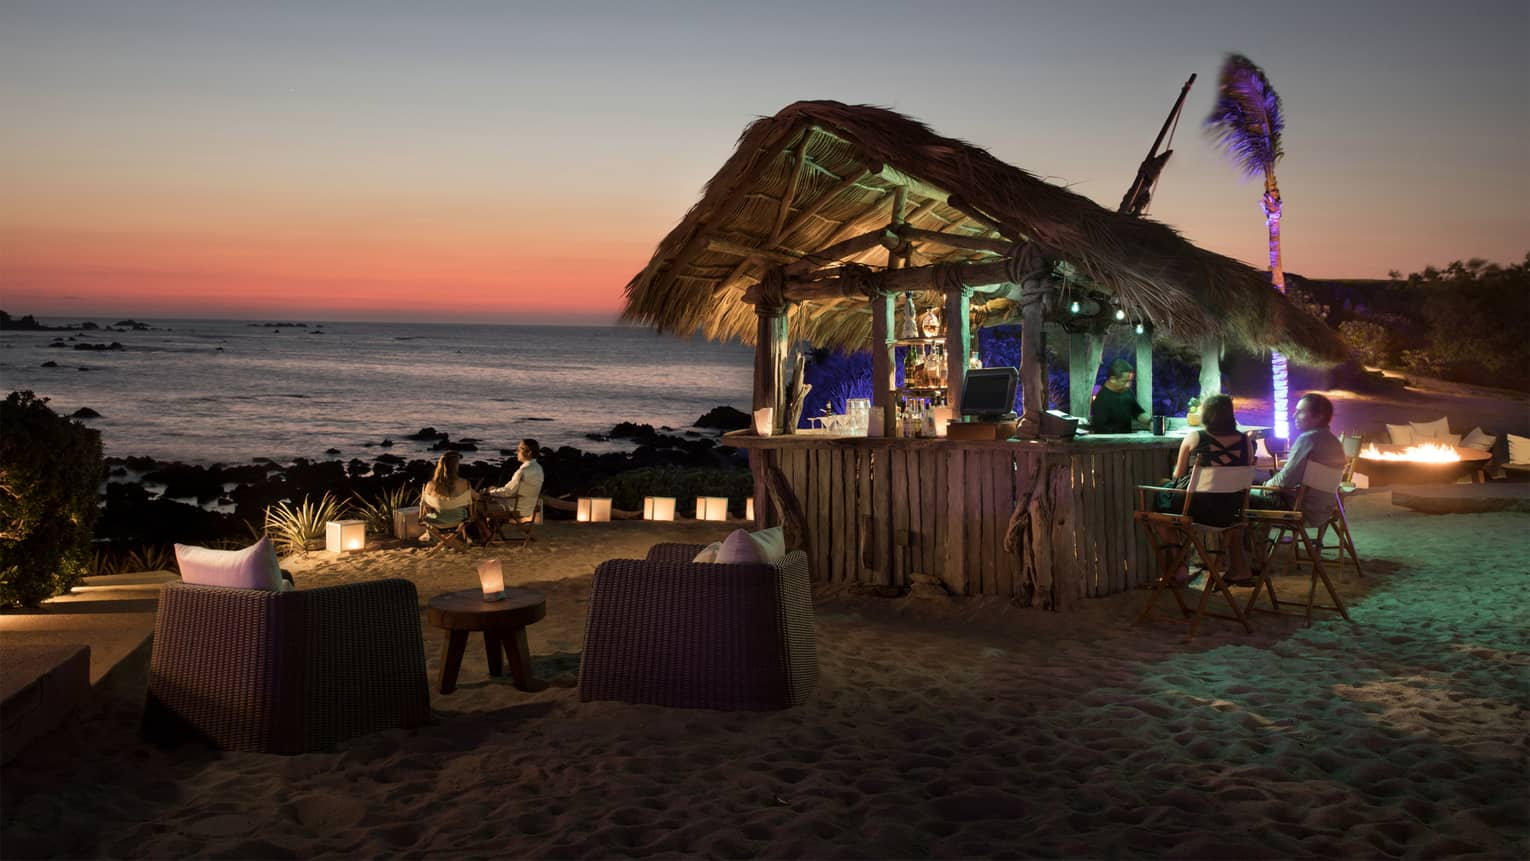 Couples on beach chairs at casual The Shack seafood hut bar at sunset on Las Cuevas Beach